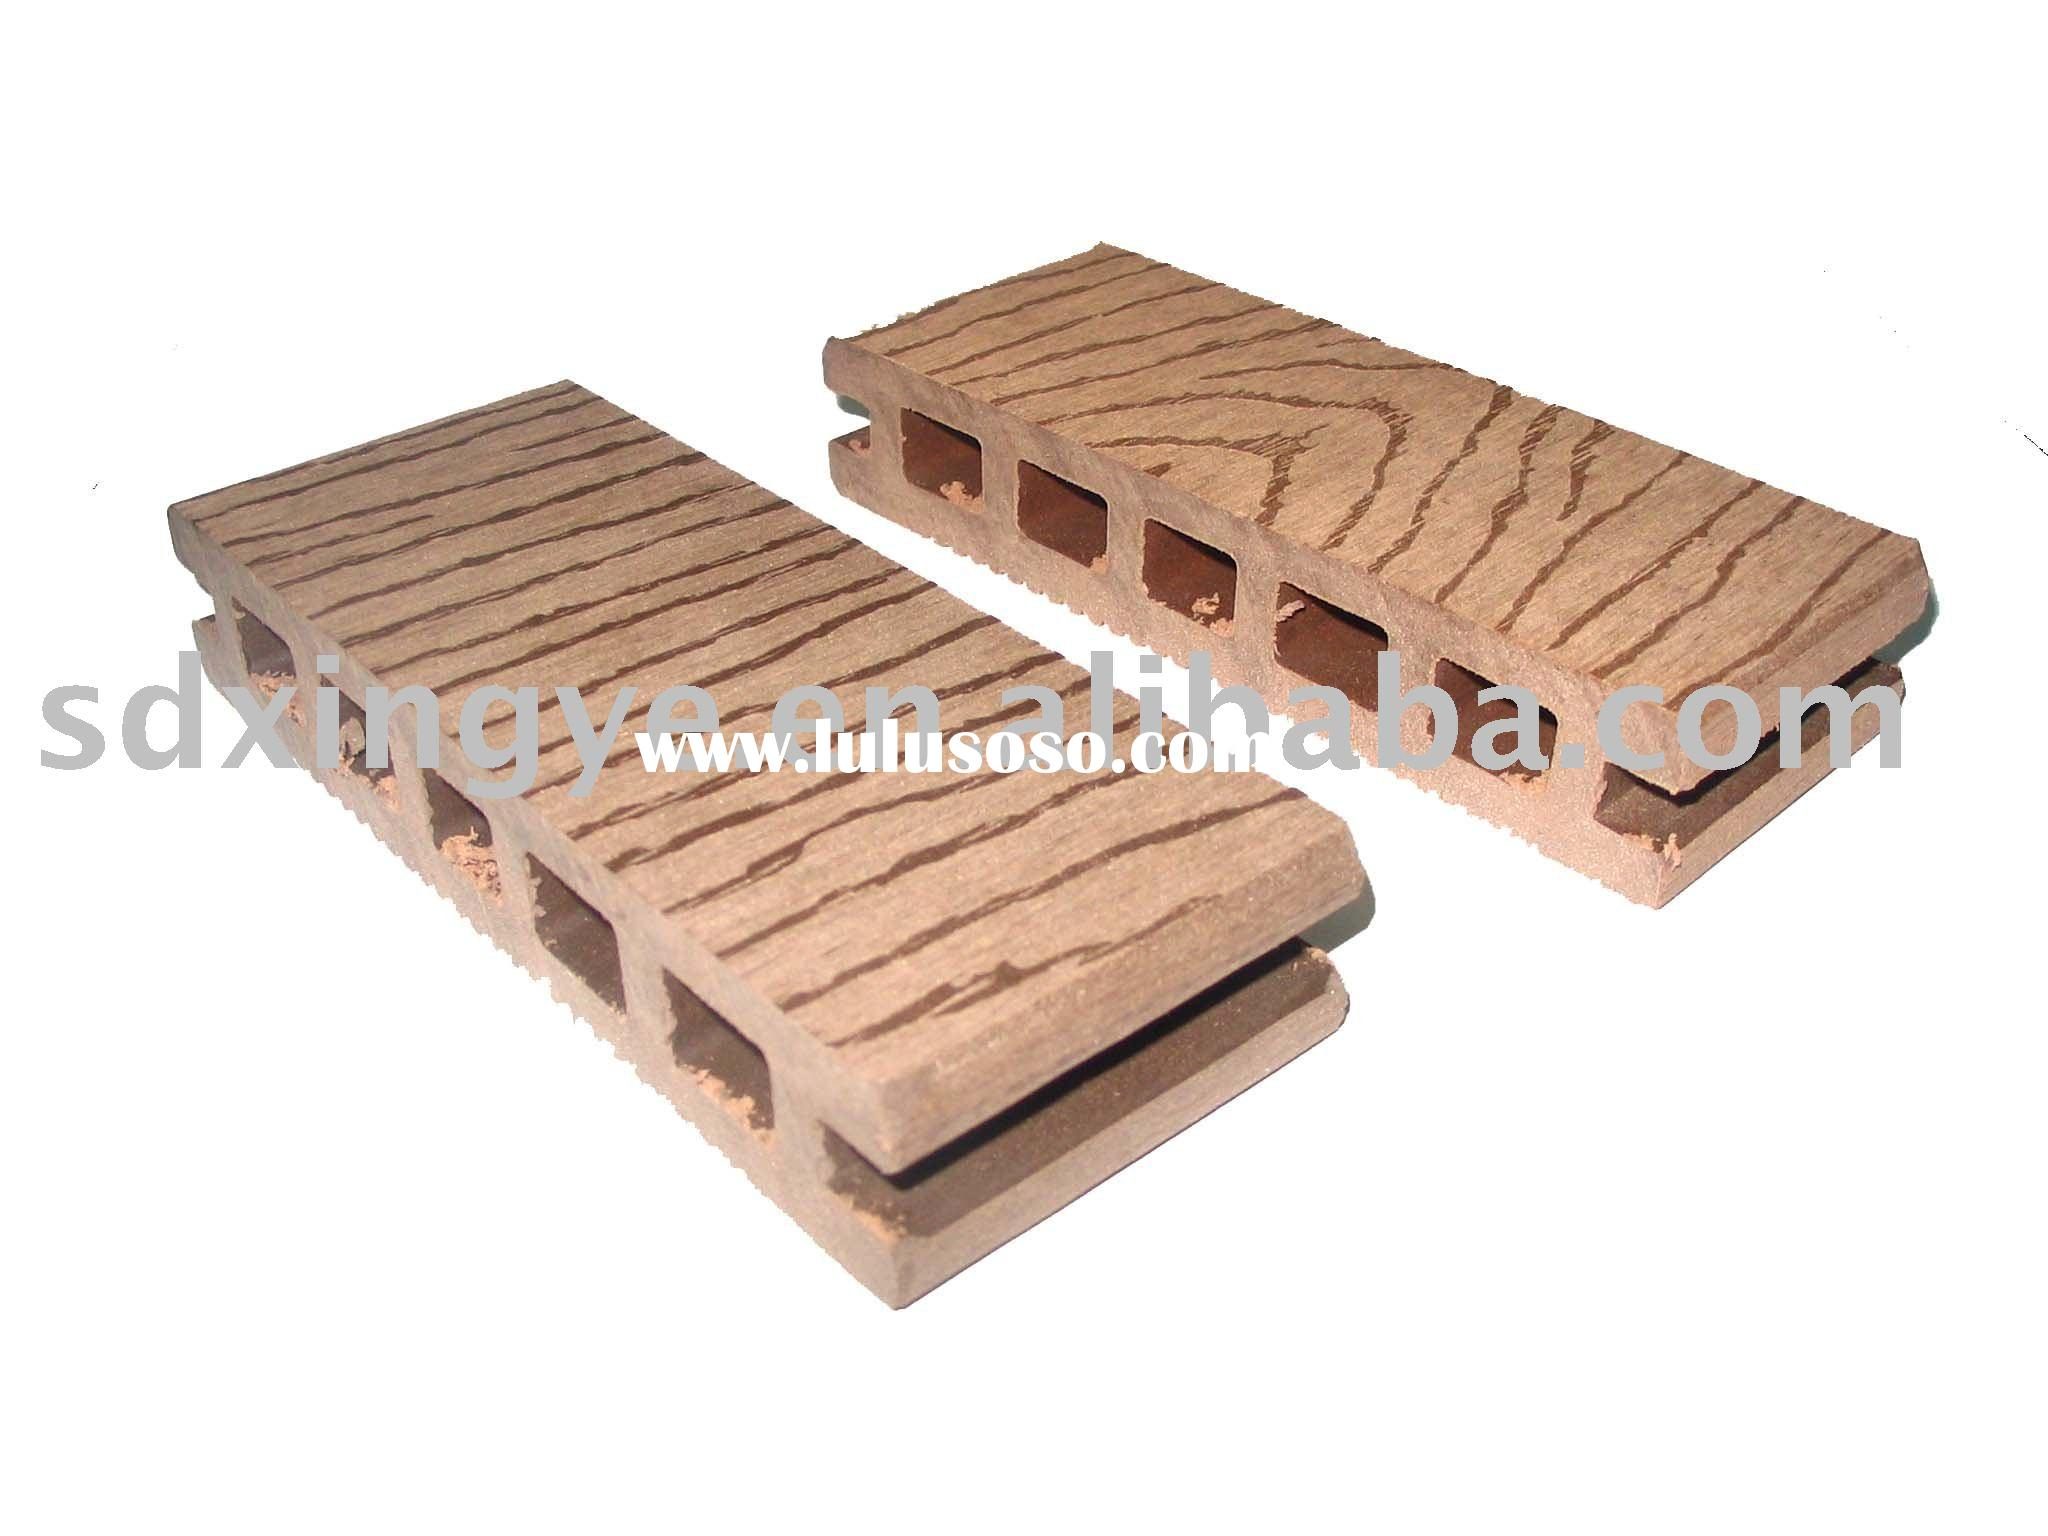 Decking Materials Non Toxic Decking Material